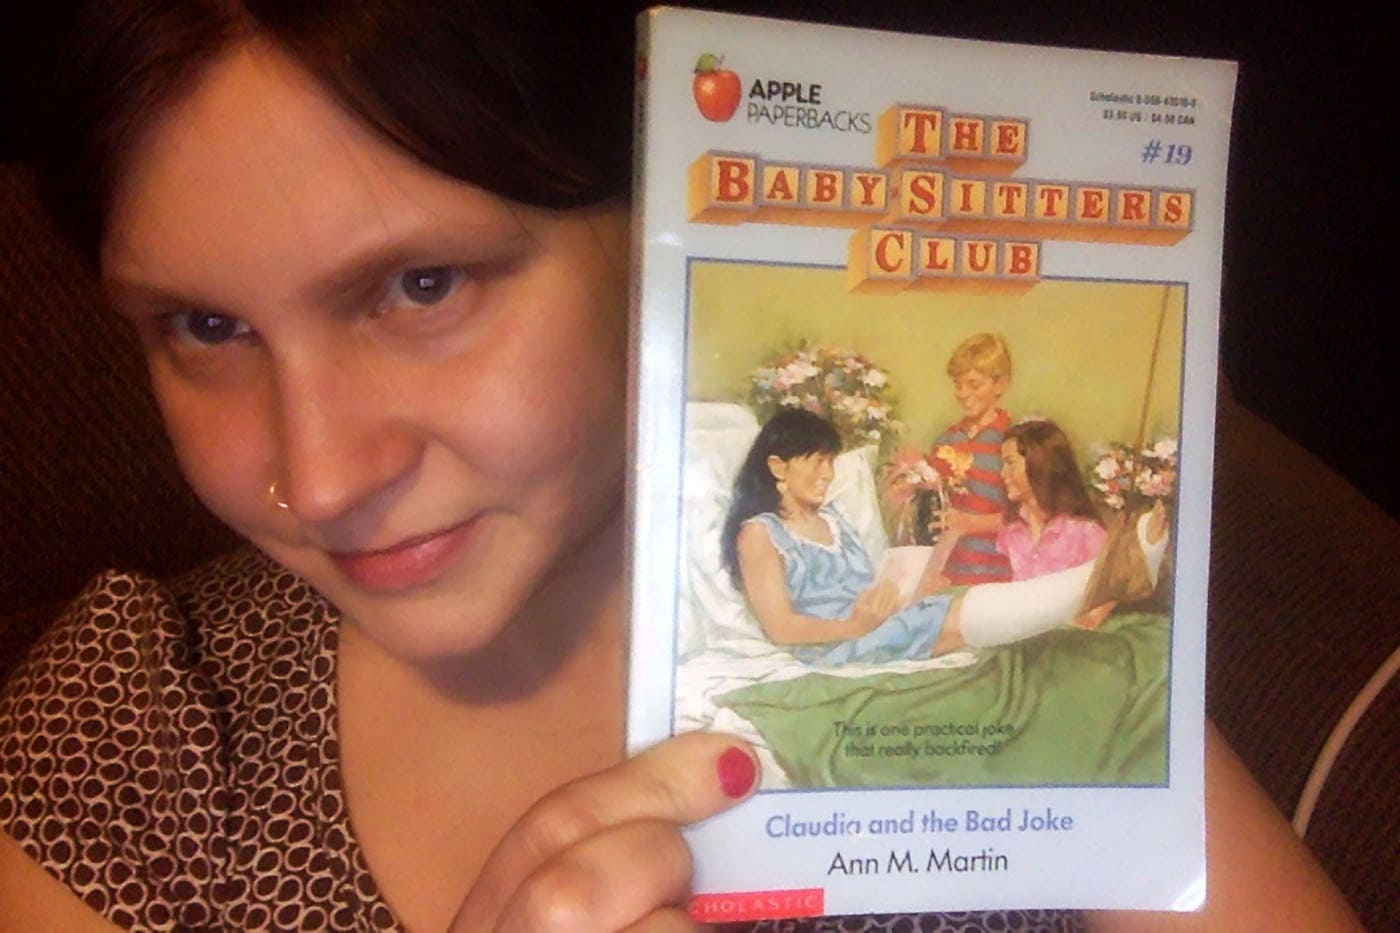 Baby-Sitters Club #19: Claudia and the Bad Joke